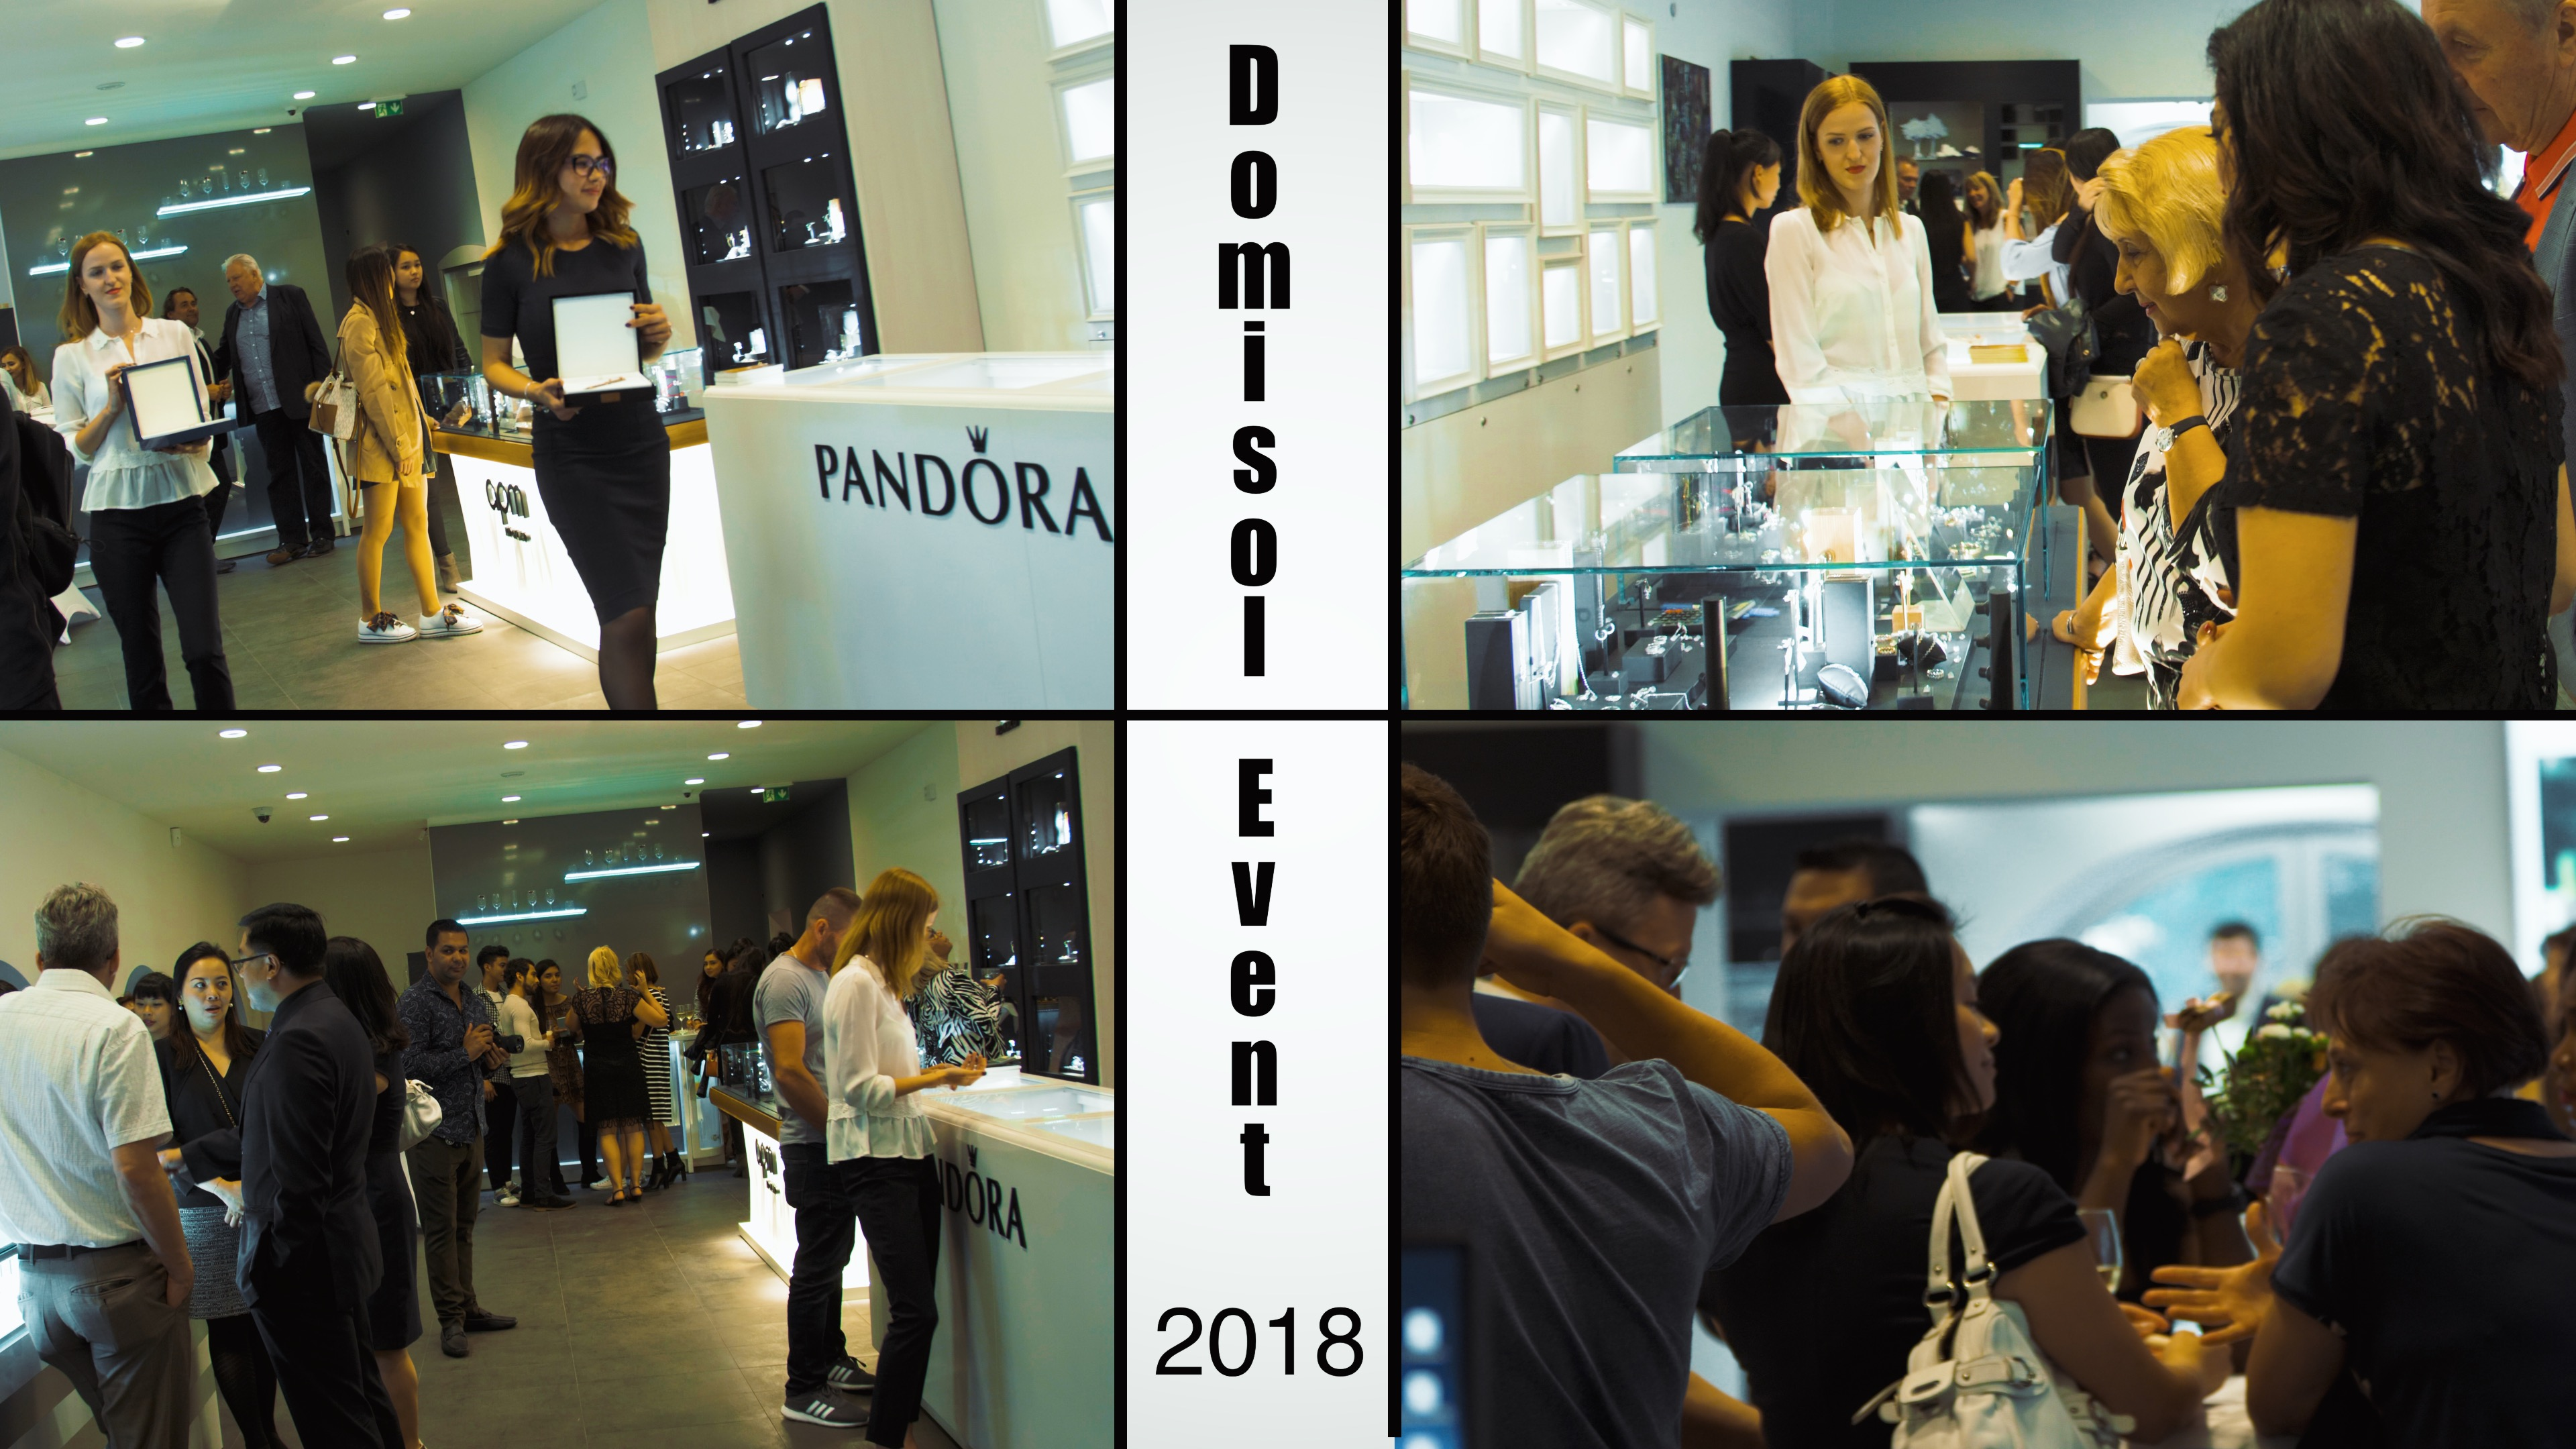 Grand Opening doMiSol